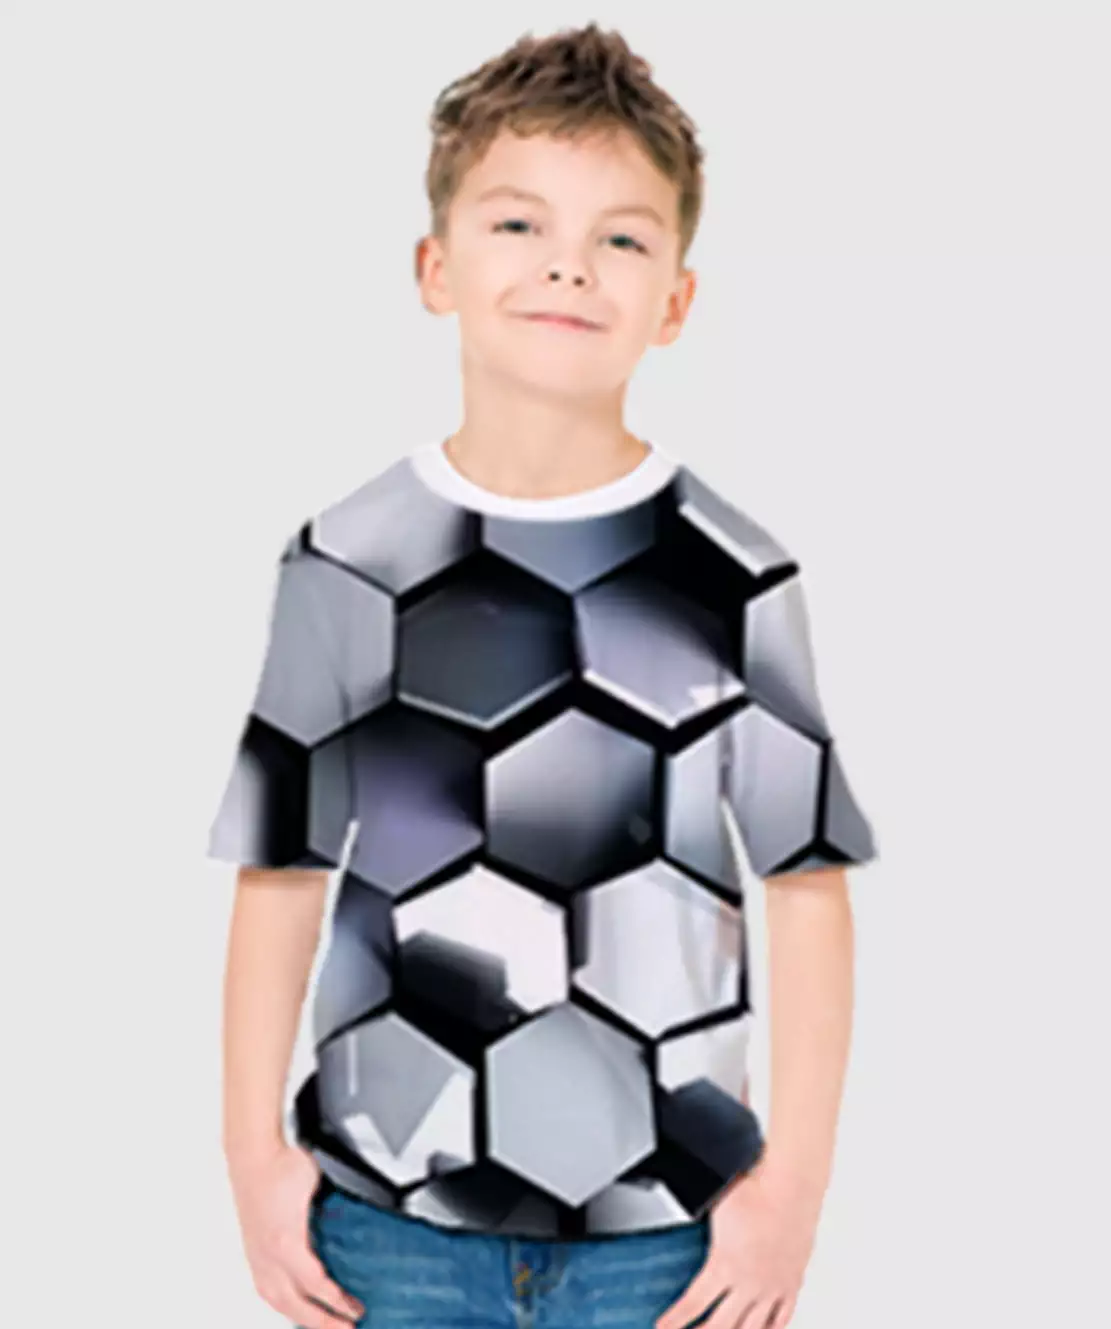 Boys Round Neck Half Printed 3D Hexagon T-Shirt